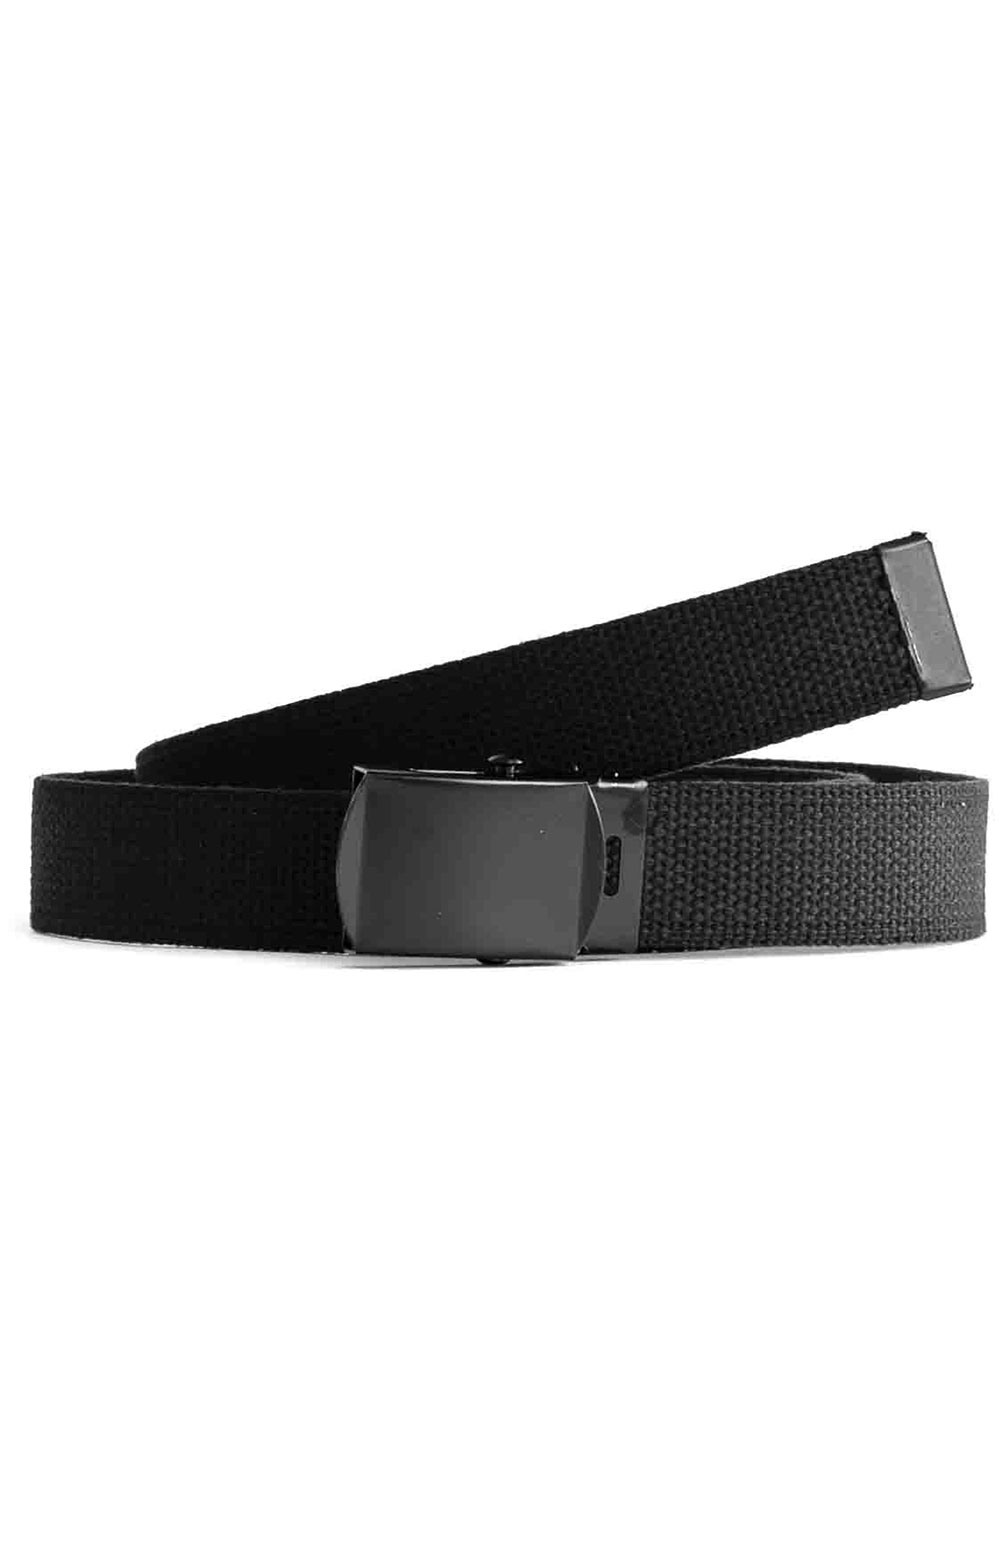 (4294) Military Web Belt With Black Buckle - Black 2